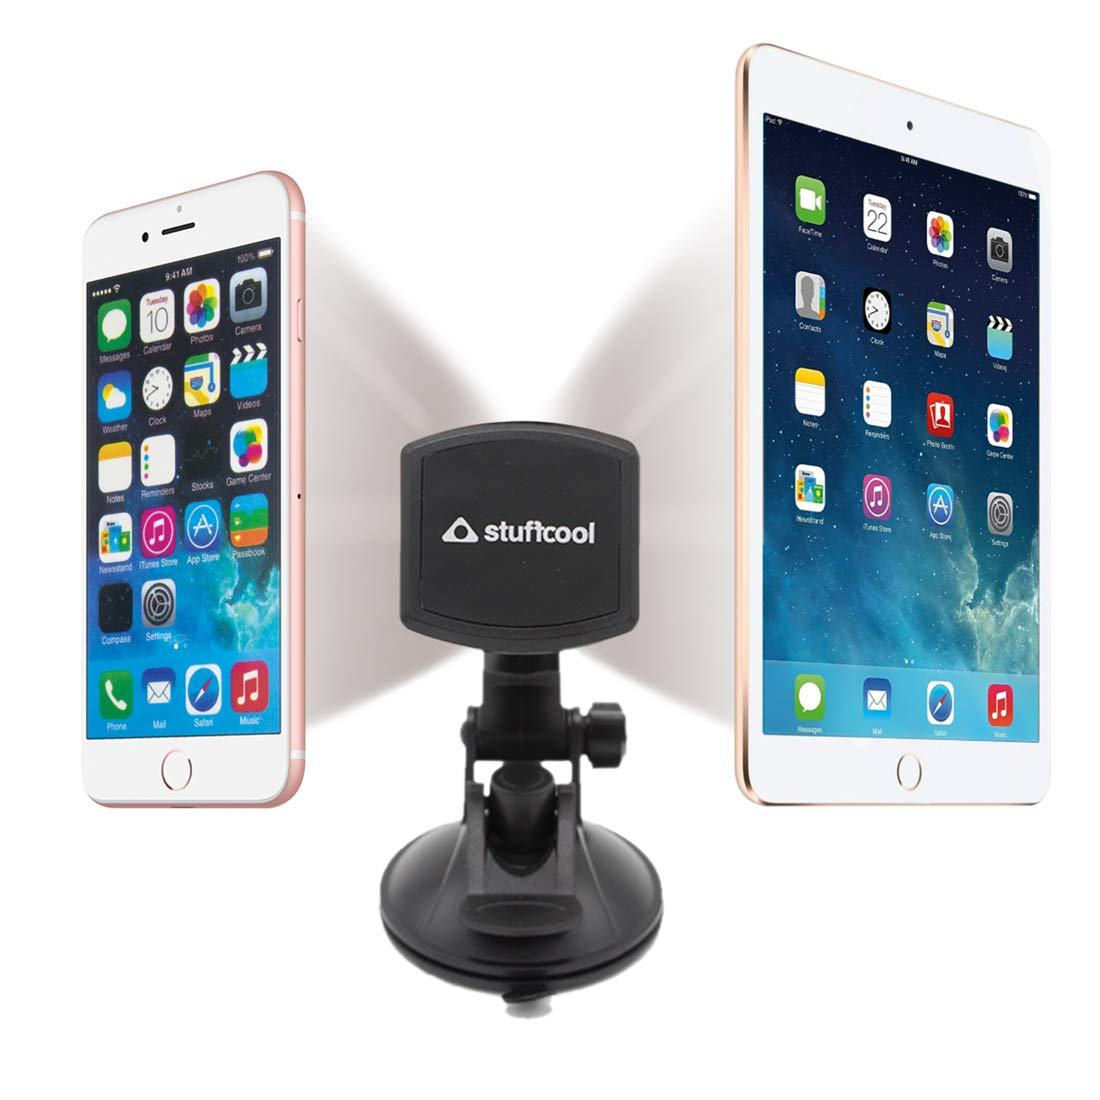 Stuffcool Magnetic Phone Car Mount, 360° Rotation Universal Phone Holder  for Car Dashboard, Windshield and Desktop Compatible with